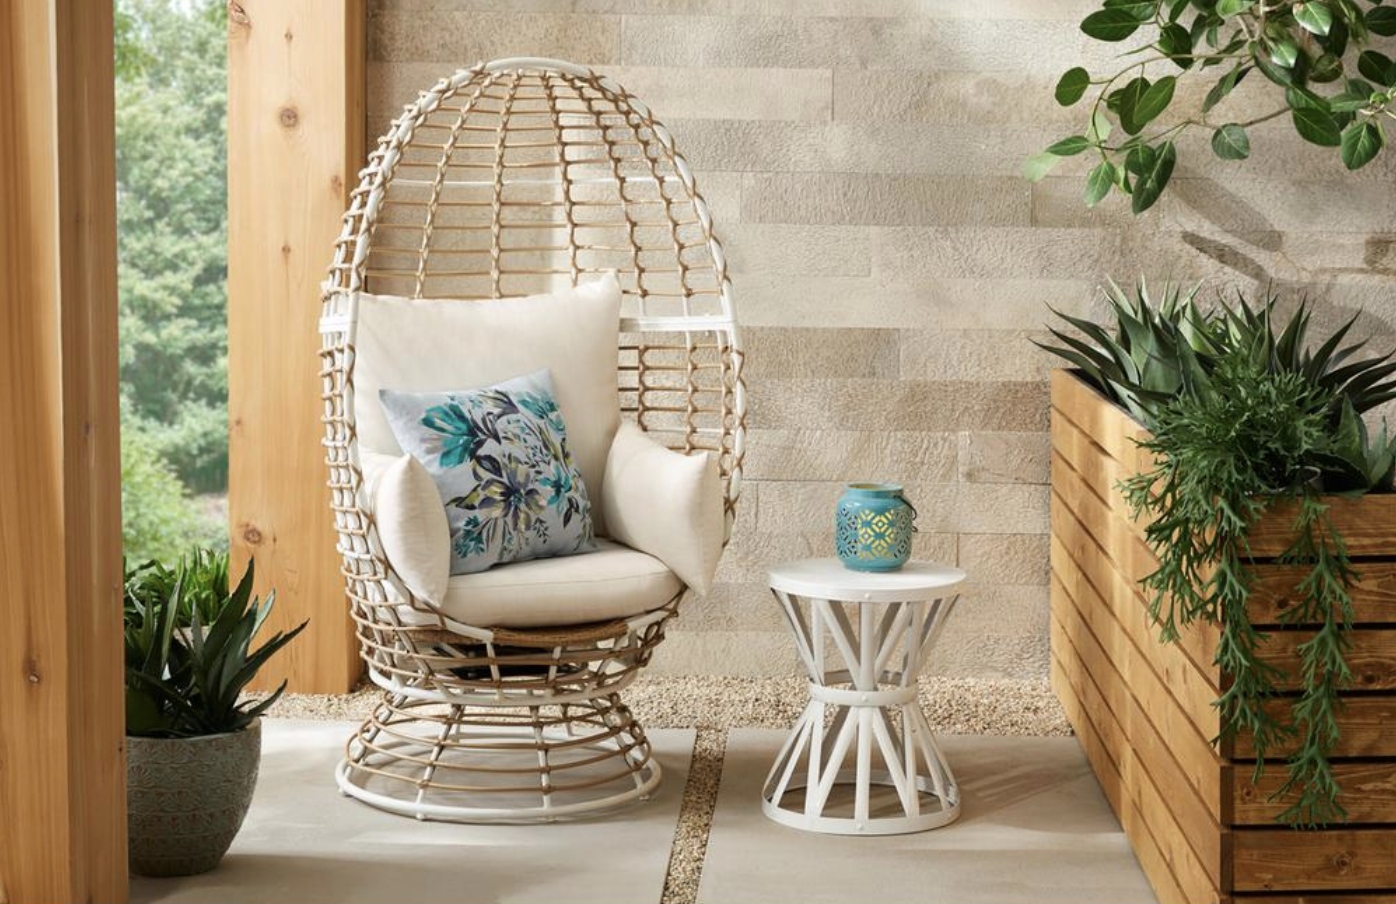 Target Southport Patio Egg Chair, Target Southport Patio Egg Chair dupes, affordable dupes for the Target Southport Patio Egg Chair, egg chair inspiration, egg chair home ideas, egg chairs, wicker egg chairs, hanging egg chairs, interior, home decor, home interior, interior styling, target dupes, patio furniture, patio furniture inspiration, Jennifer Worman, Red Soles and Red Wine, Brown Wicker Outdoor Patio Egg Lounge Chair with Beige Cushions